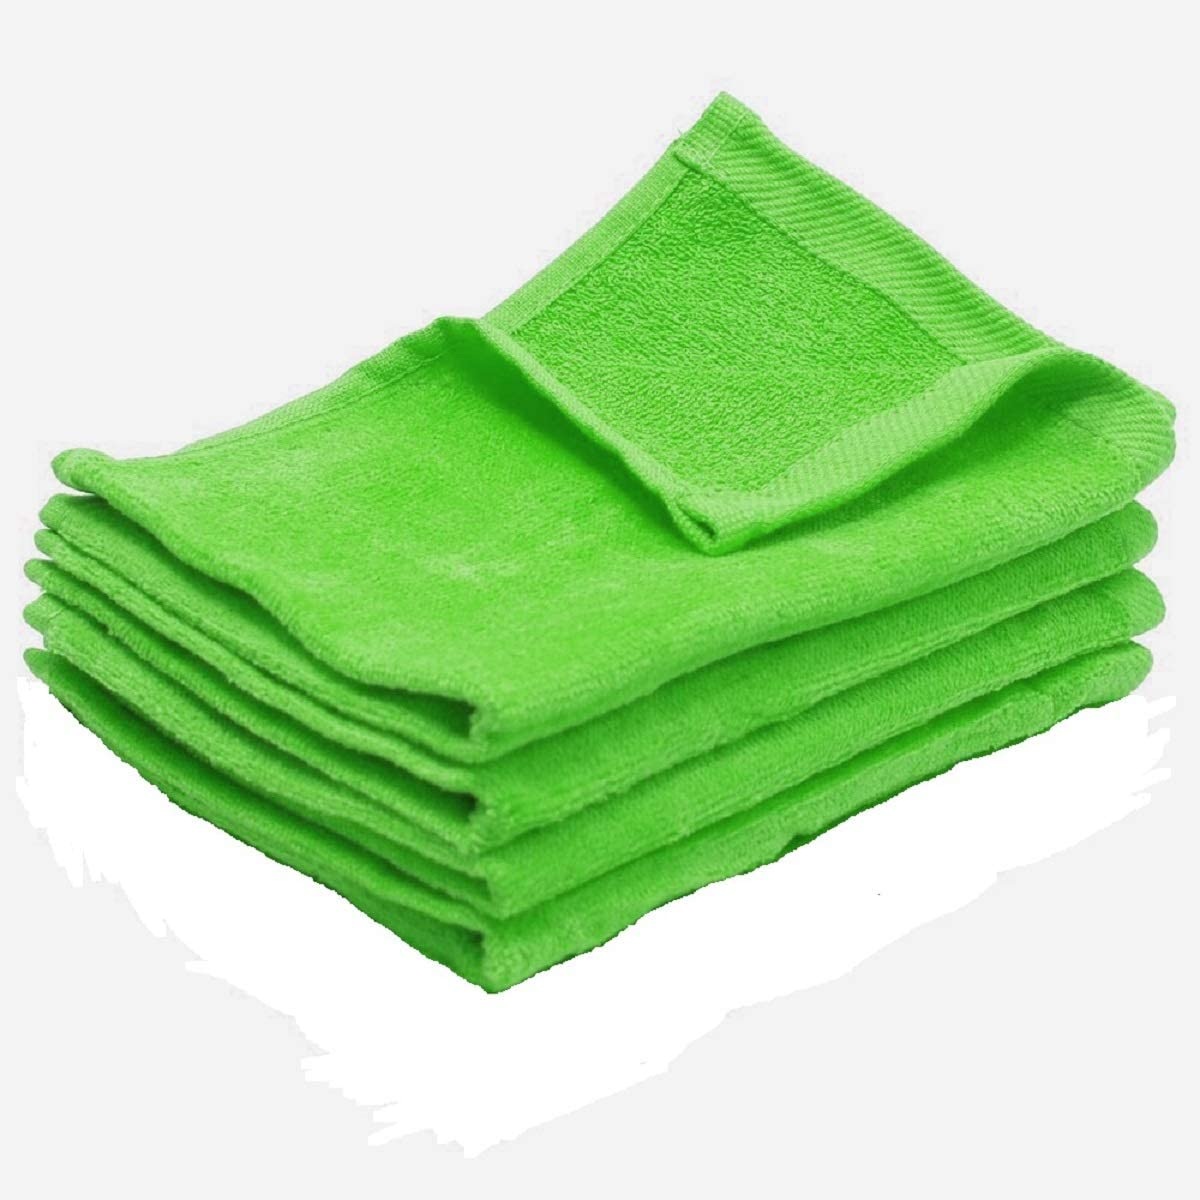 Show Car Guys Fingertip Towels Lime Green 11 x 18 100/% Cotton Terry-Velour.